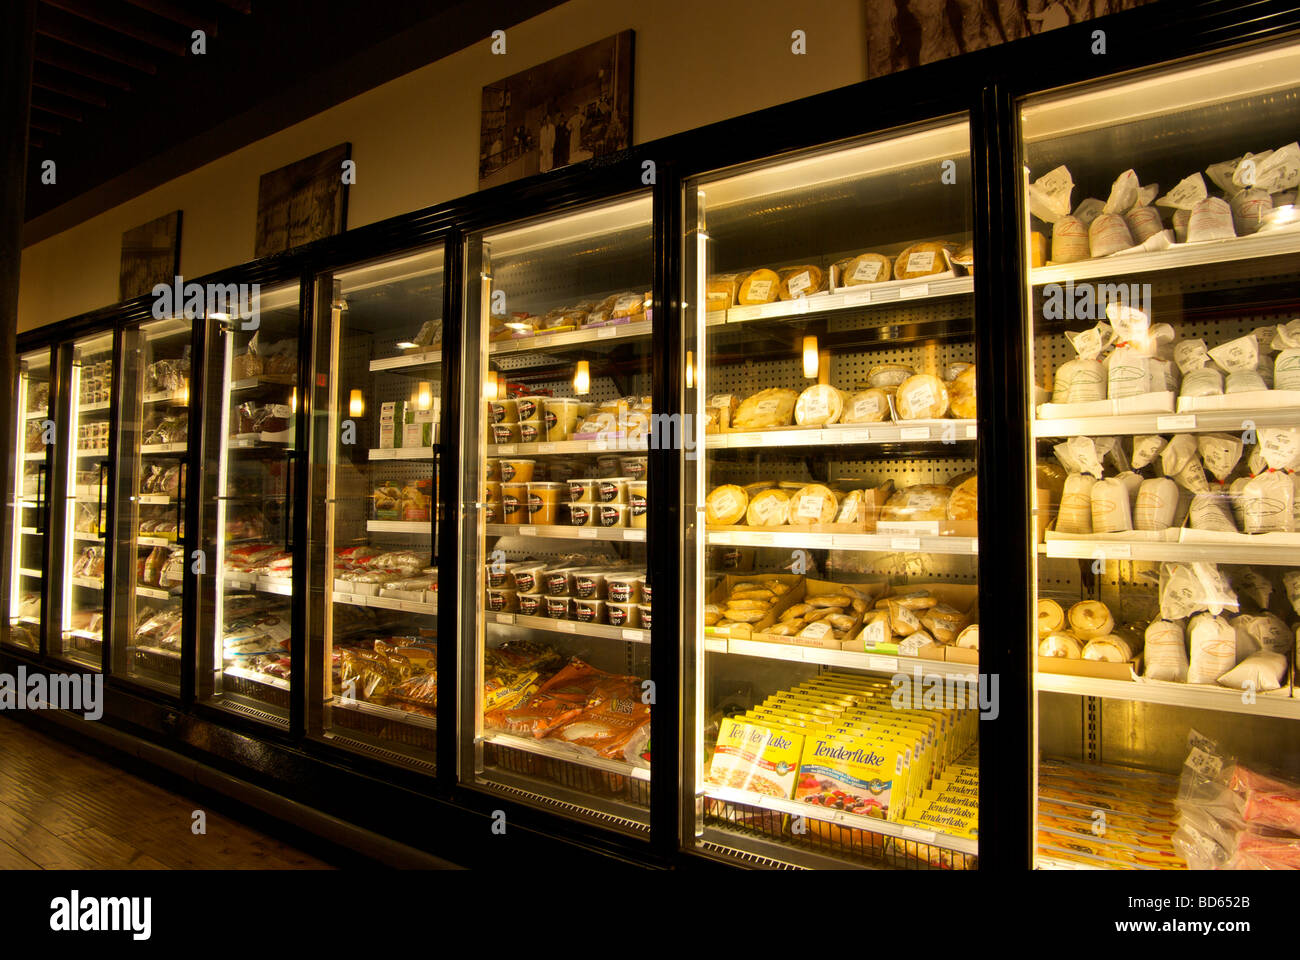 stock photo upright freezer display case in small retail grocery store - Small Upright Freezer